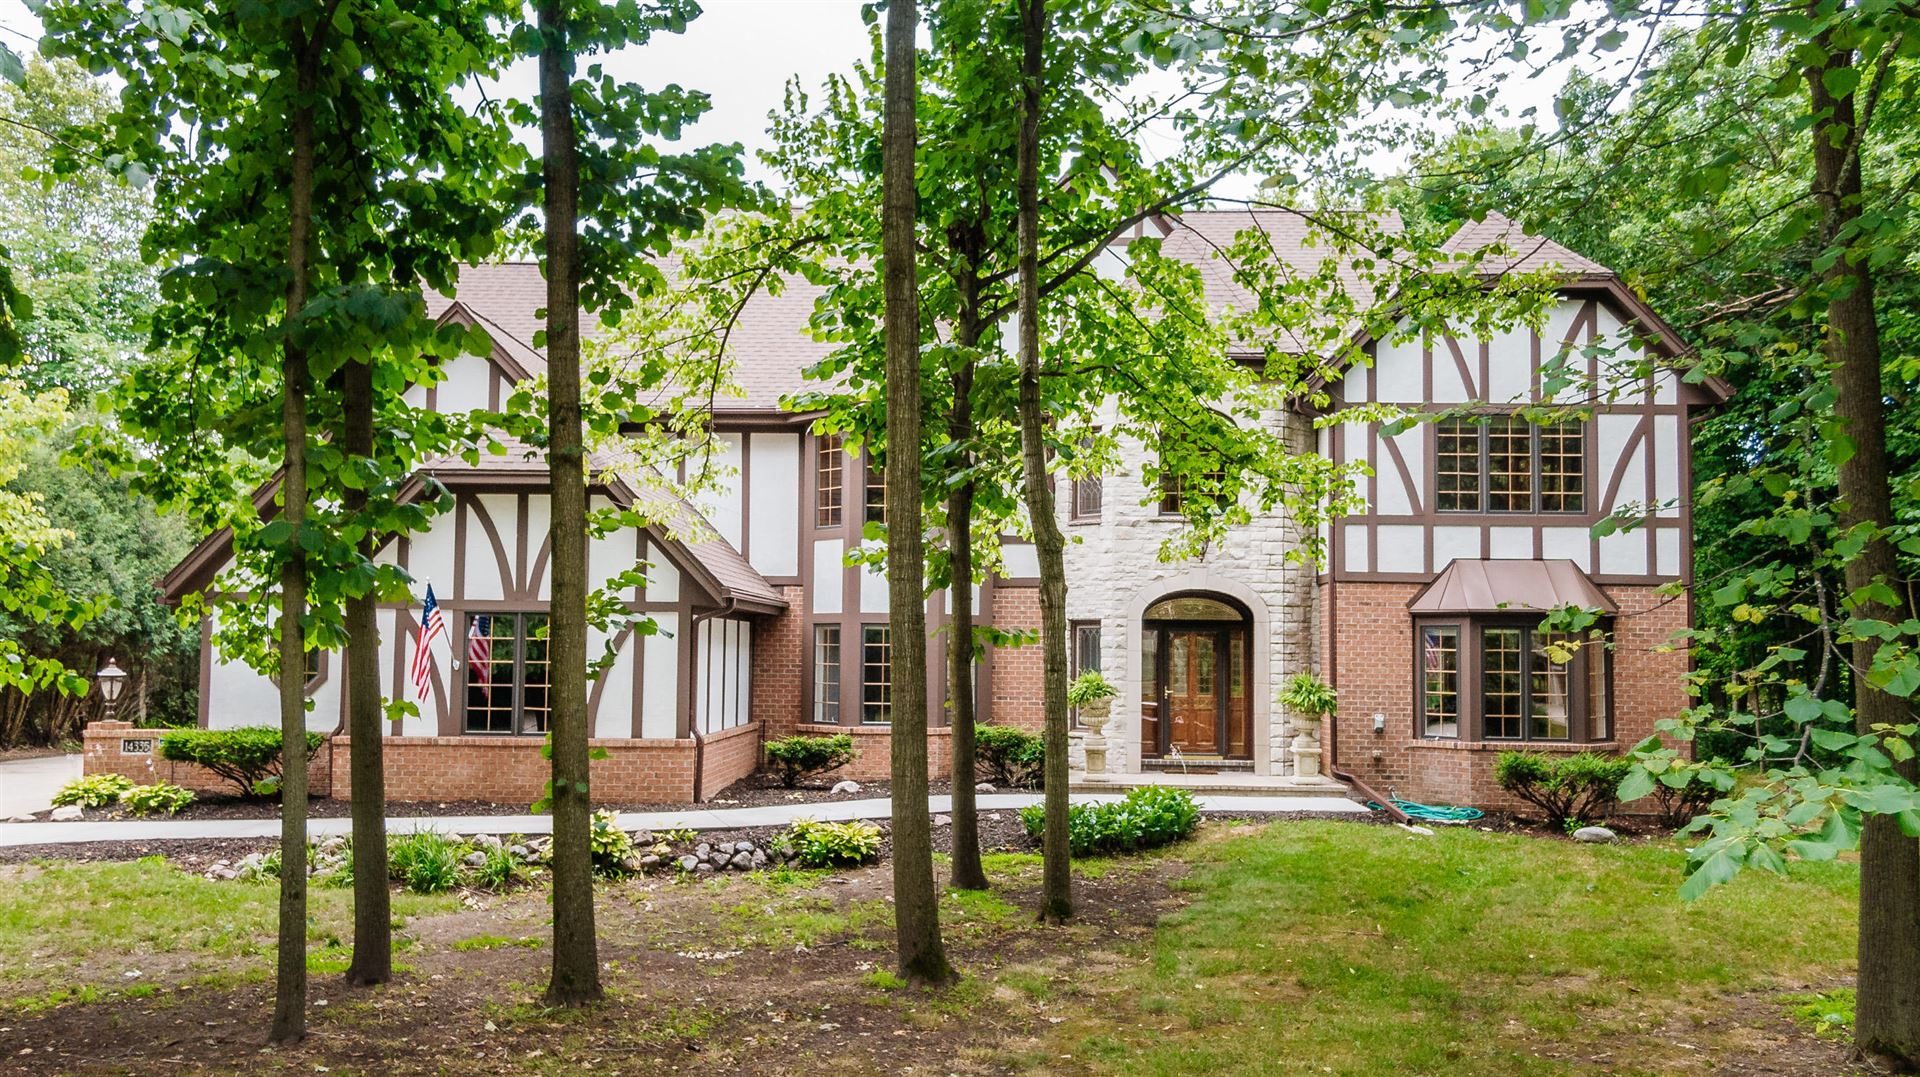 14335 Woodmount Dr, Brookfield, WI 53005 - #: 1700537